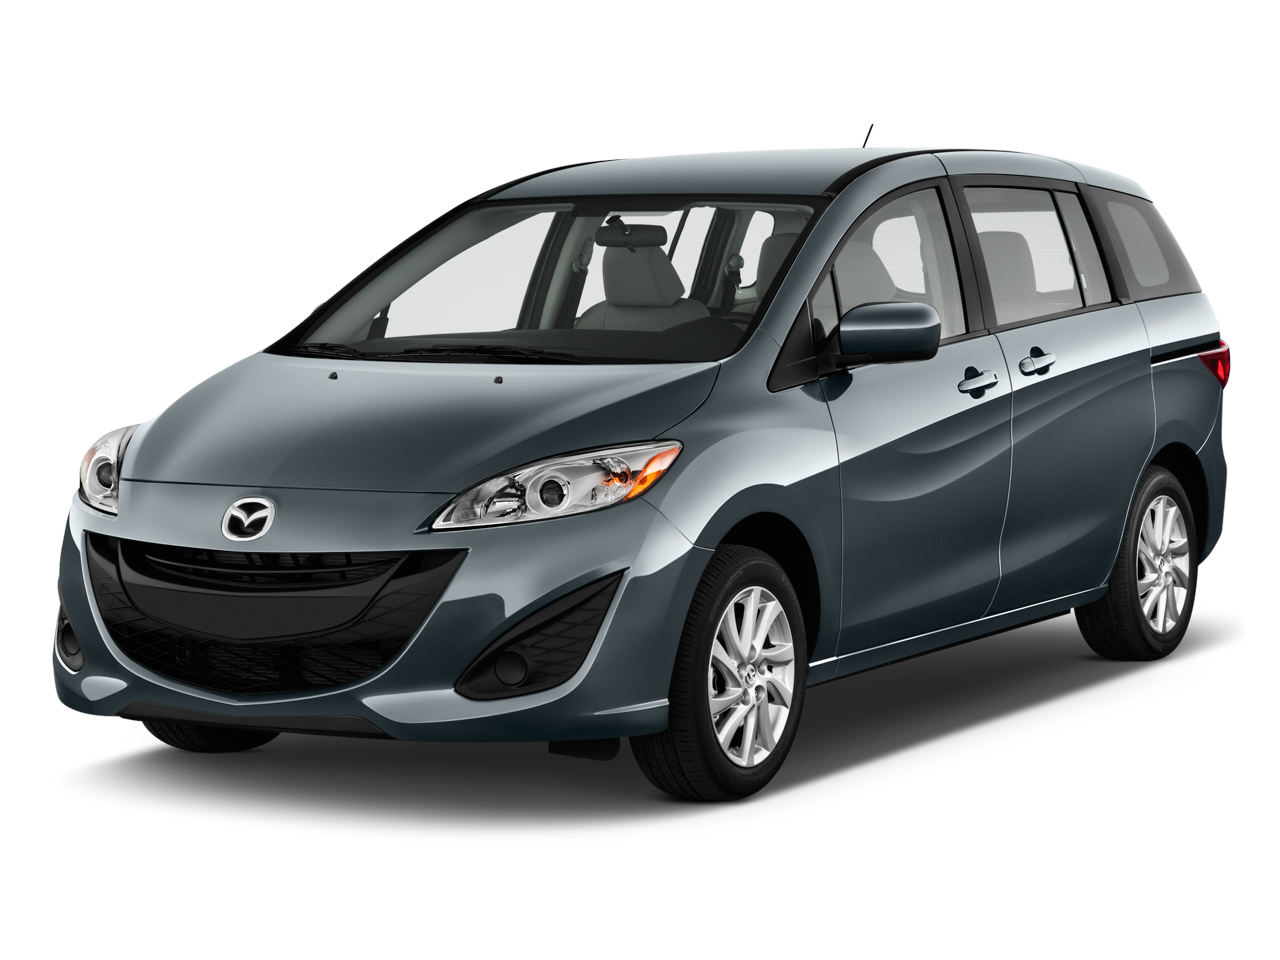 2012 Mazda Mazda5 Review Ratings Specs Prices And